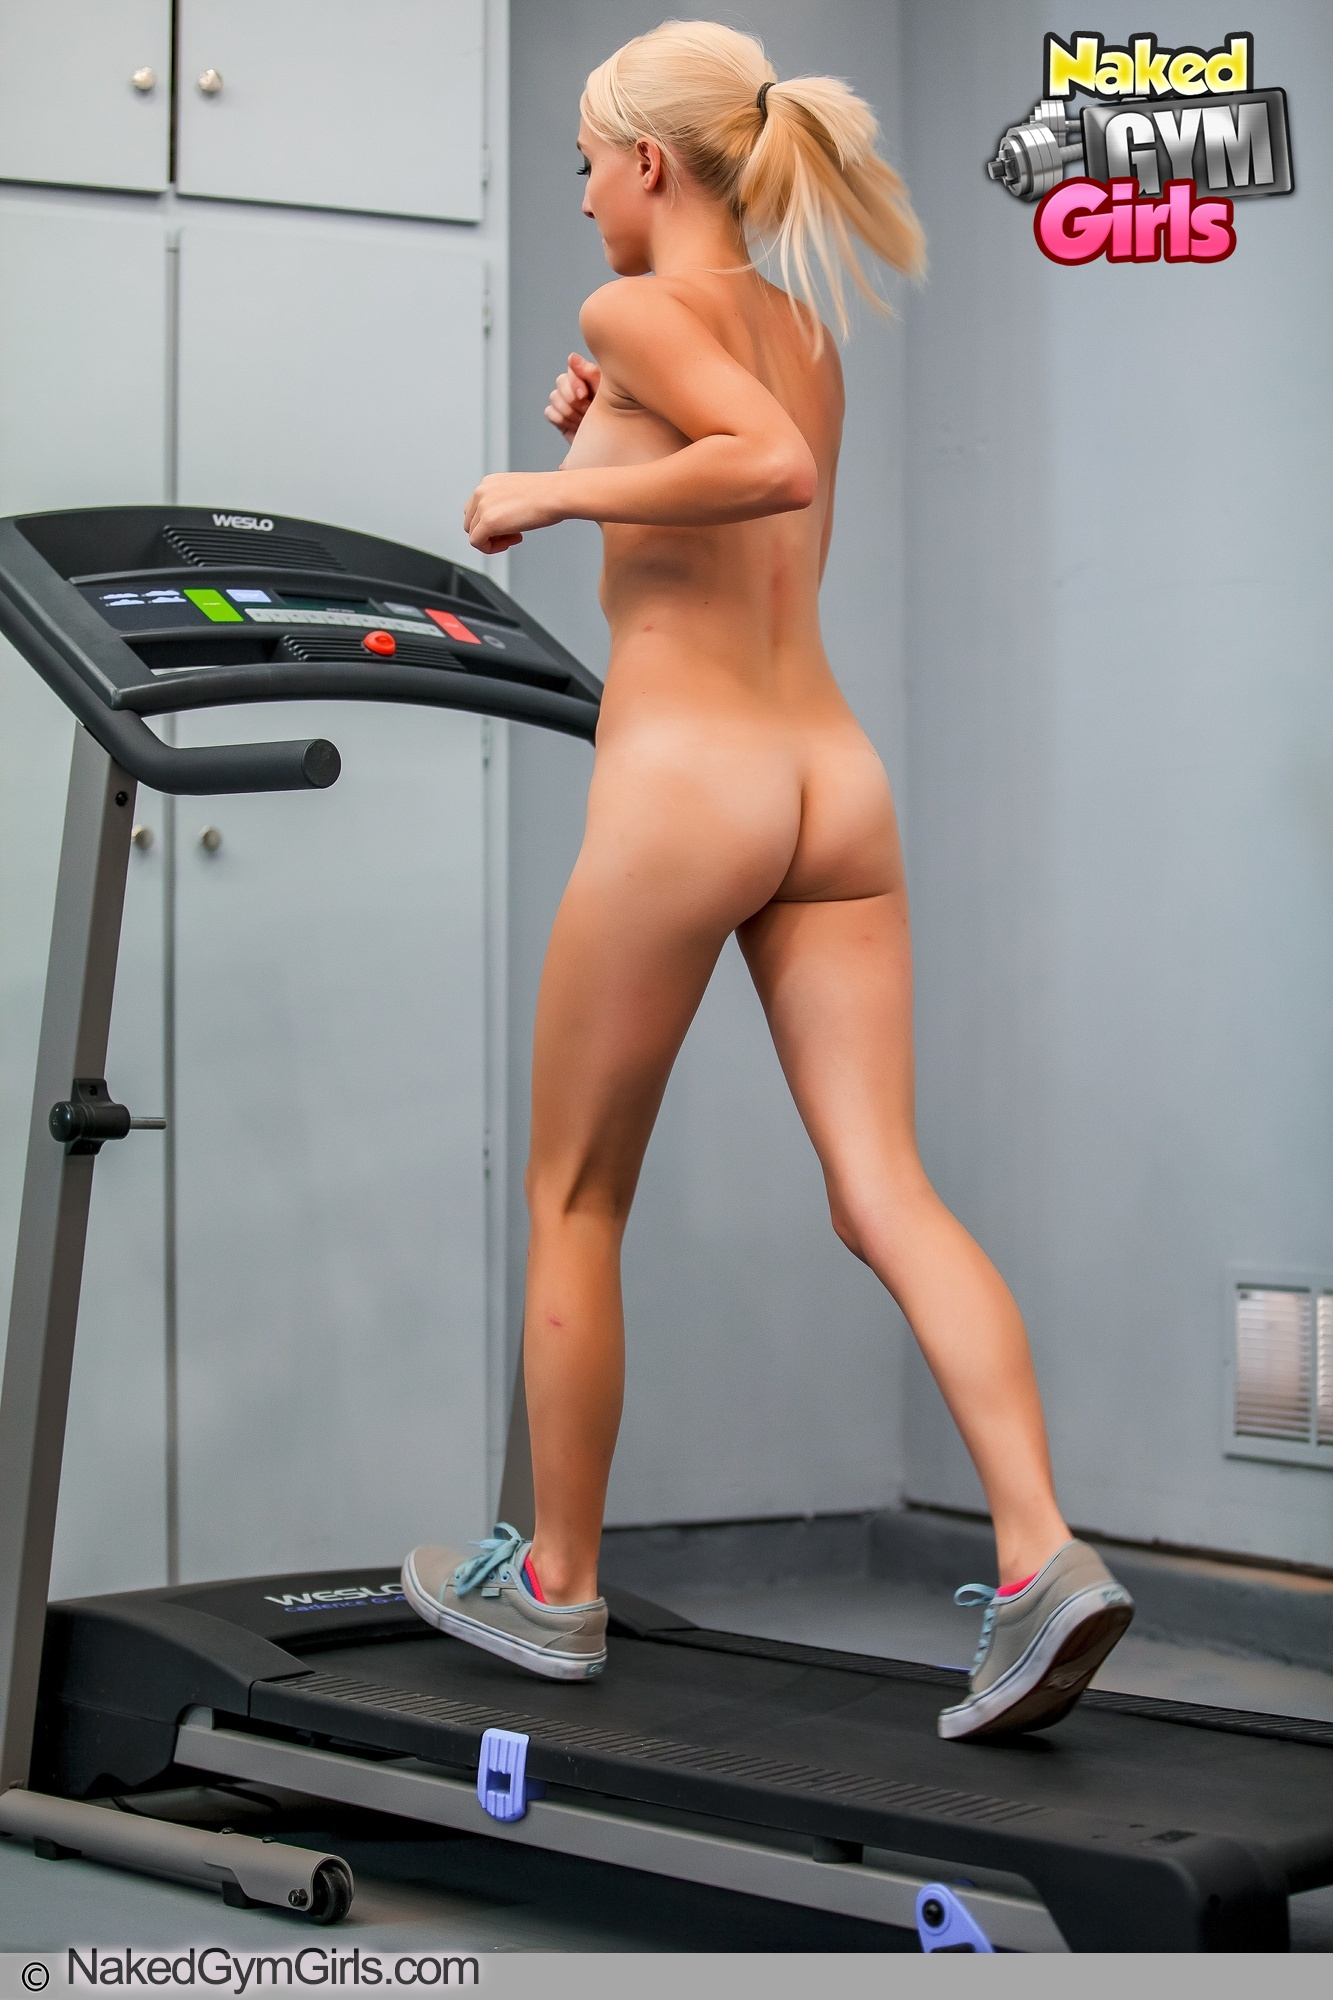 First Time Weight Lifting Free Preview Nakedgymgirlscom - Welcome To Naked Gym Girls Lose Weight, And Work Out In The Nude With These Sexy Babes-3726